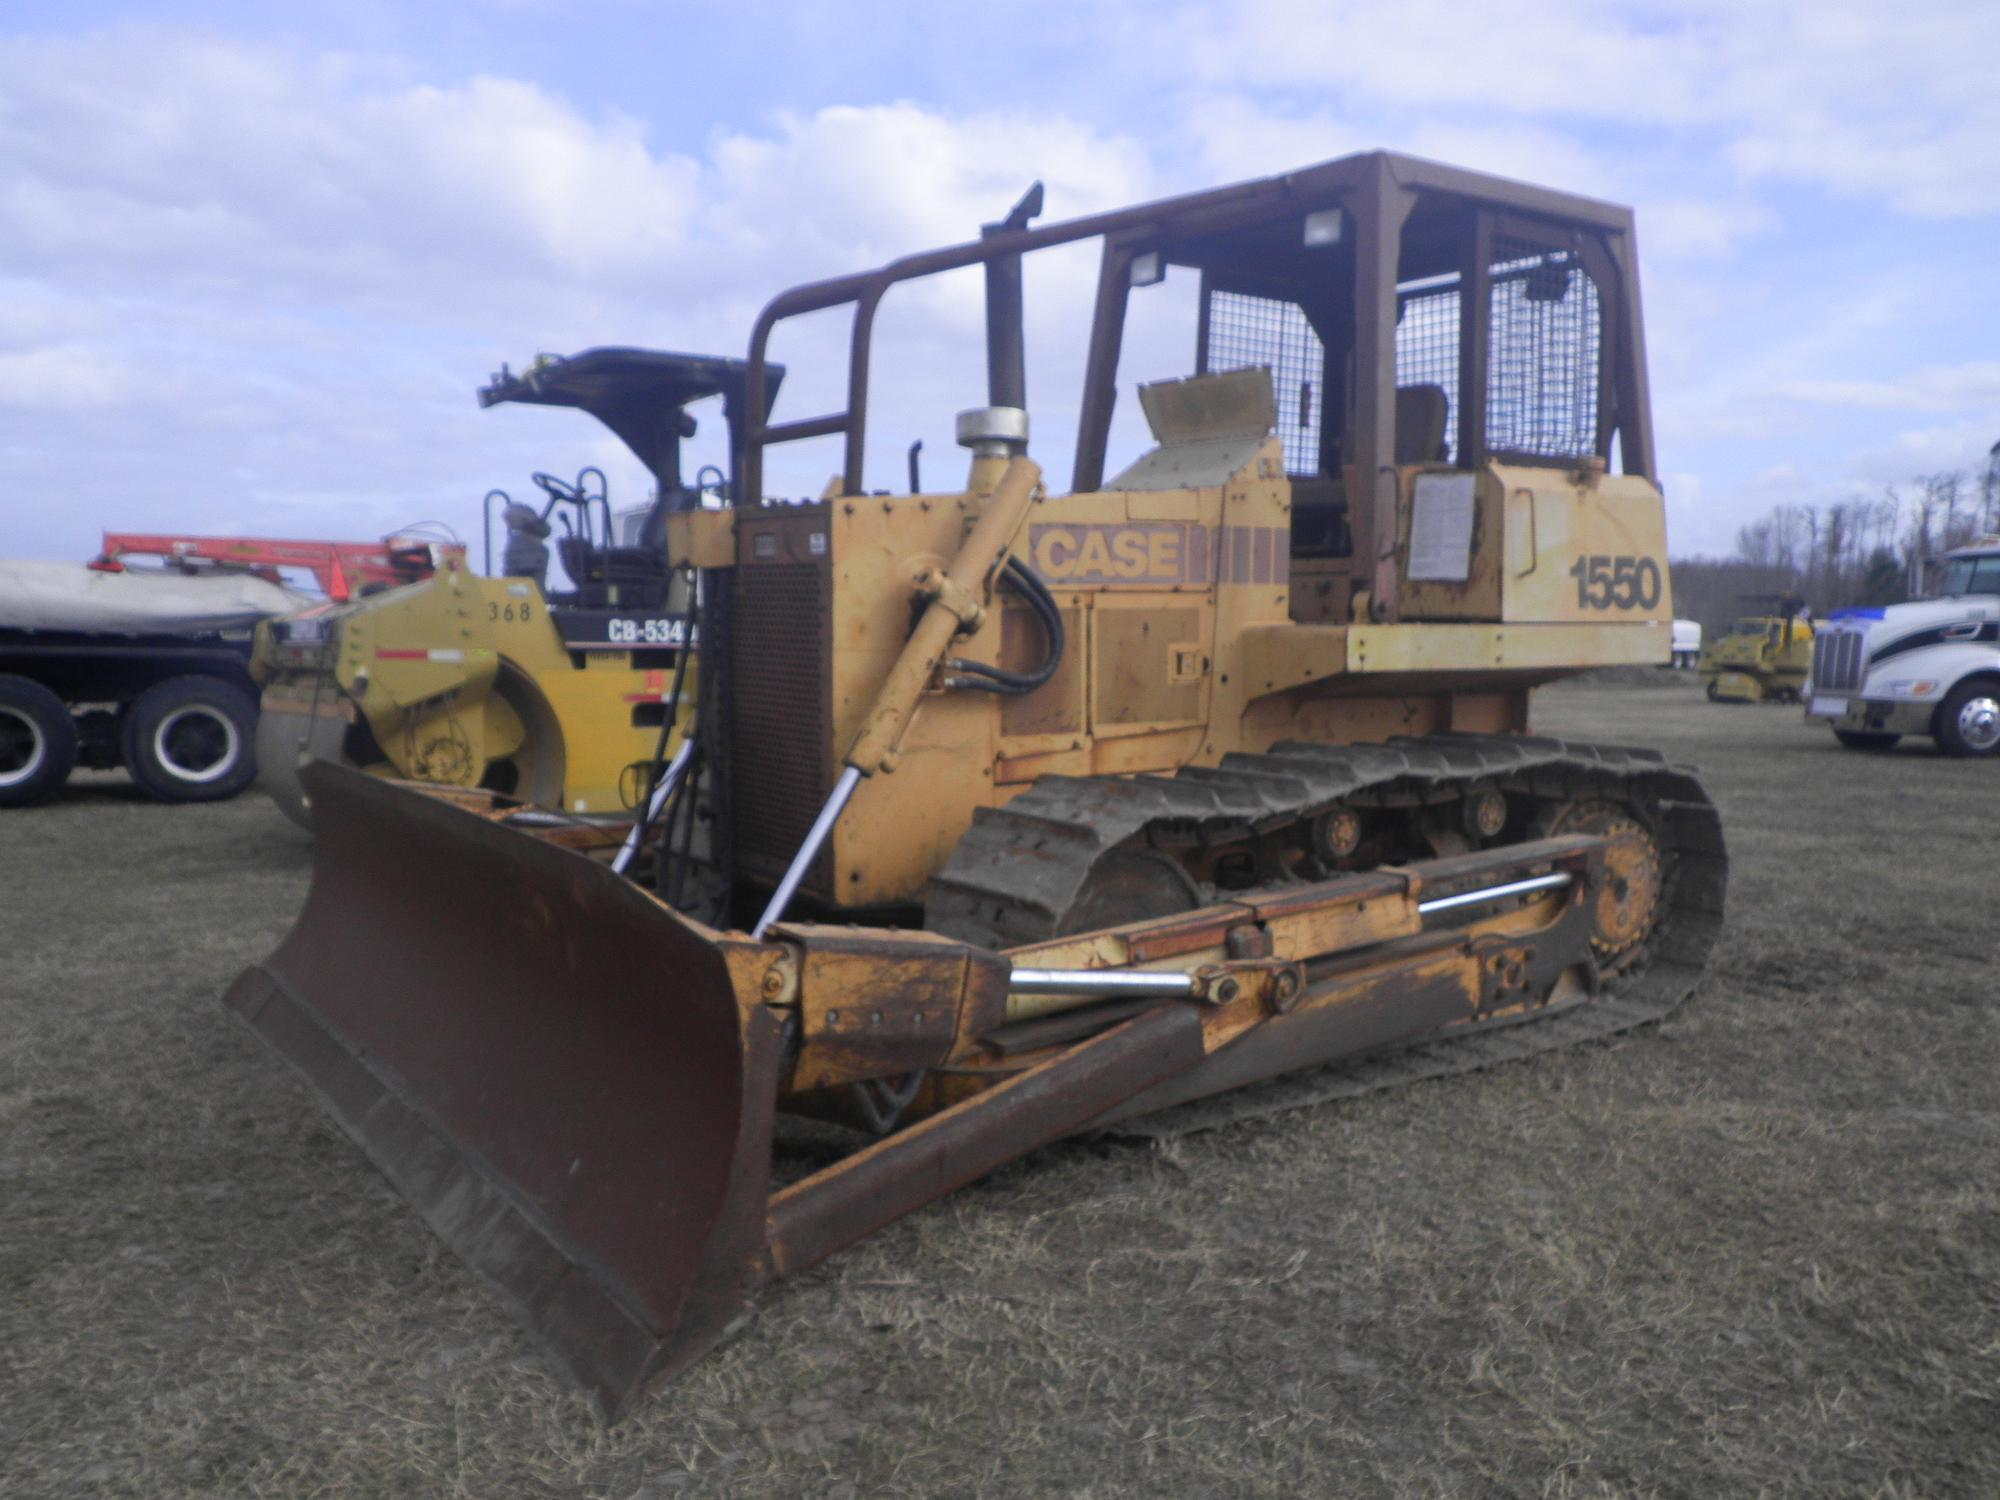 Jeff Martin Auctioneers - Construction - Industrial - Farm ... on bobcat skid steer wiring diagram, international tractor wiring diagram, mustang skid steer wiring diagram, case dozer wiring diagram, terramite t5c wiring diagram,